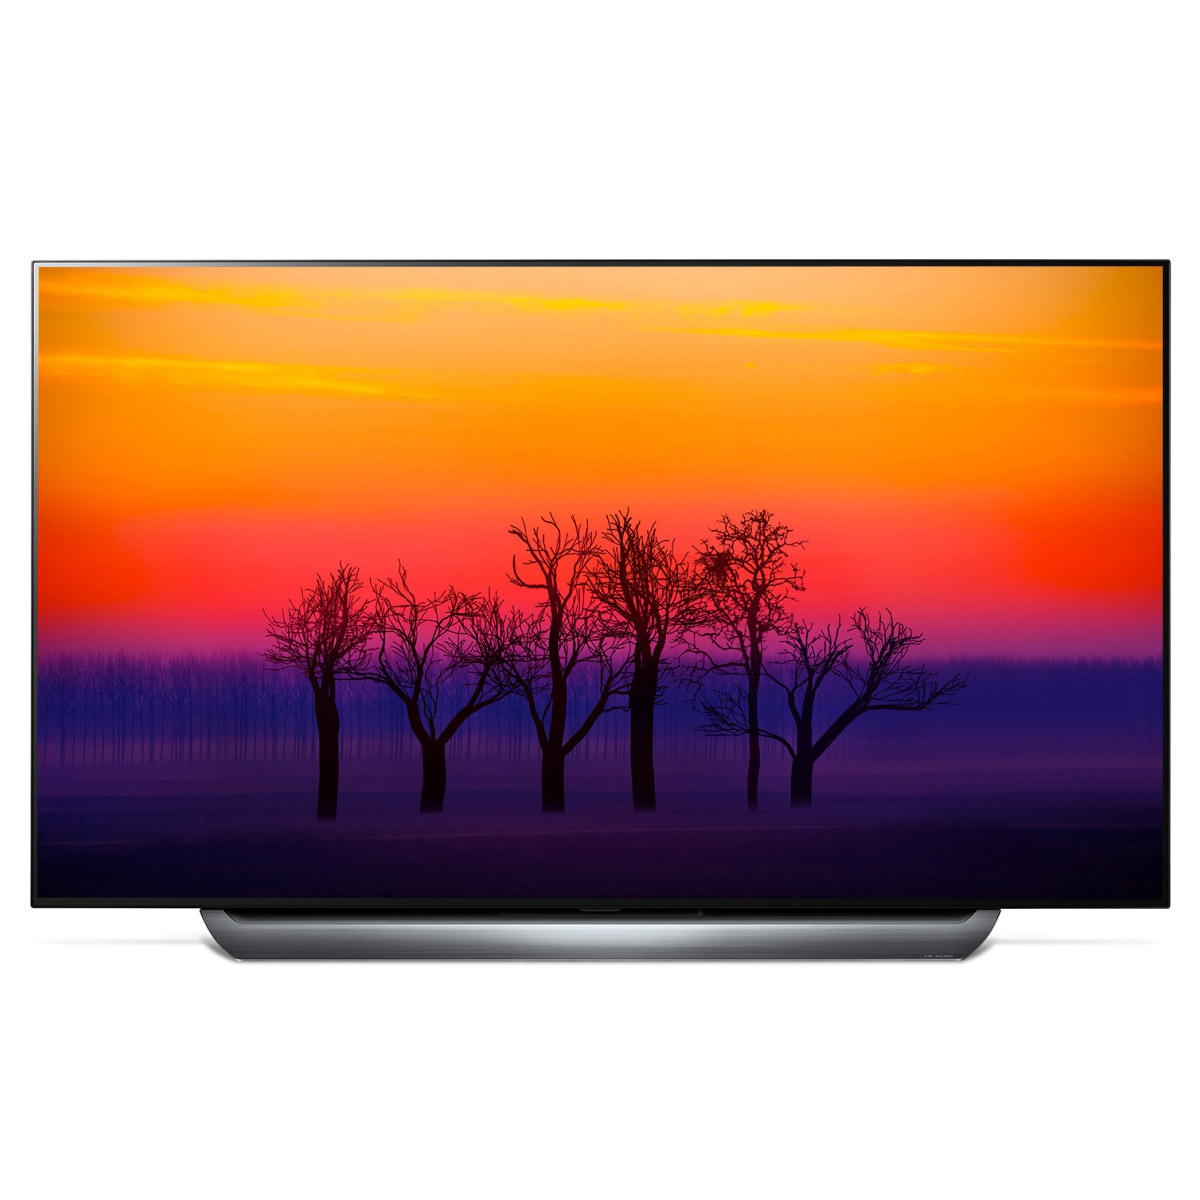 "TV LG OLED65C8 Téléviseur OLED 4K 65"" (165 cm) 16/9 - 3840 x 2160 pixels - Ultra HD 2160p - HDR - Wi-Fi - Bluetooth - Dolby Atmos (dalle native 100 Hz)"